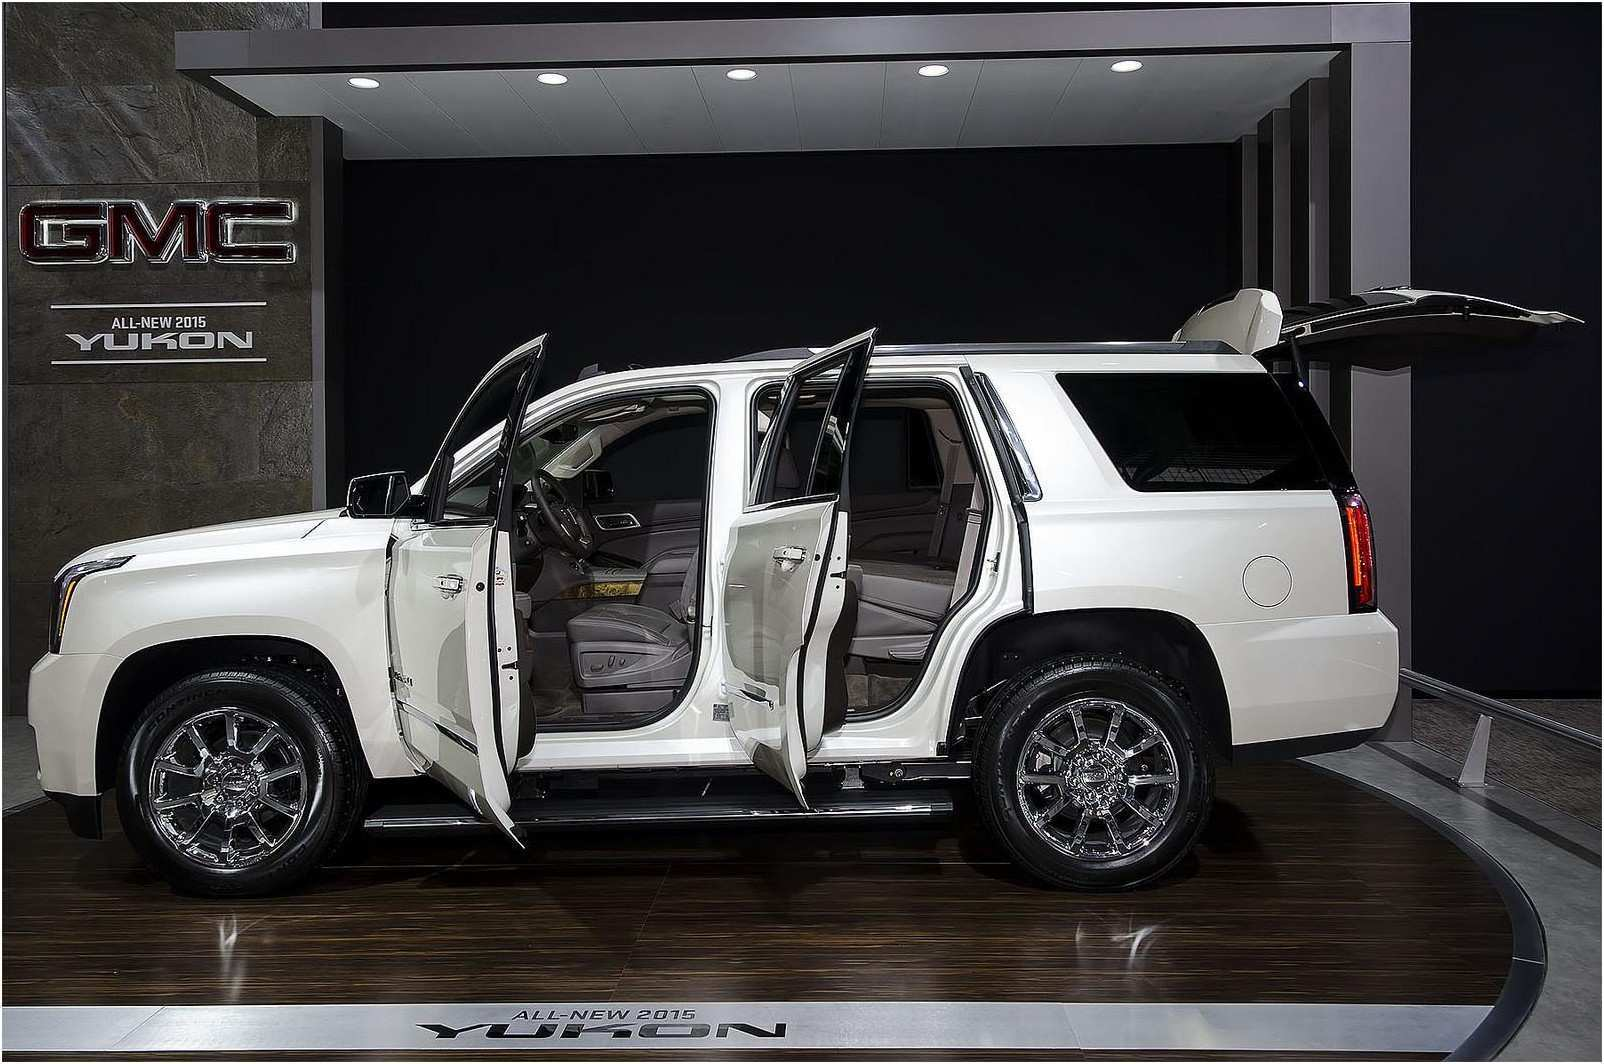 44 Gallery of 2019 Gmc Yukon Denali Release Date Exterior Spesification with 2019 Gmc Yukon Denali Release Date Exterior